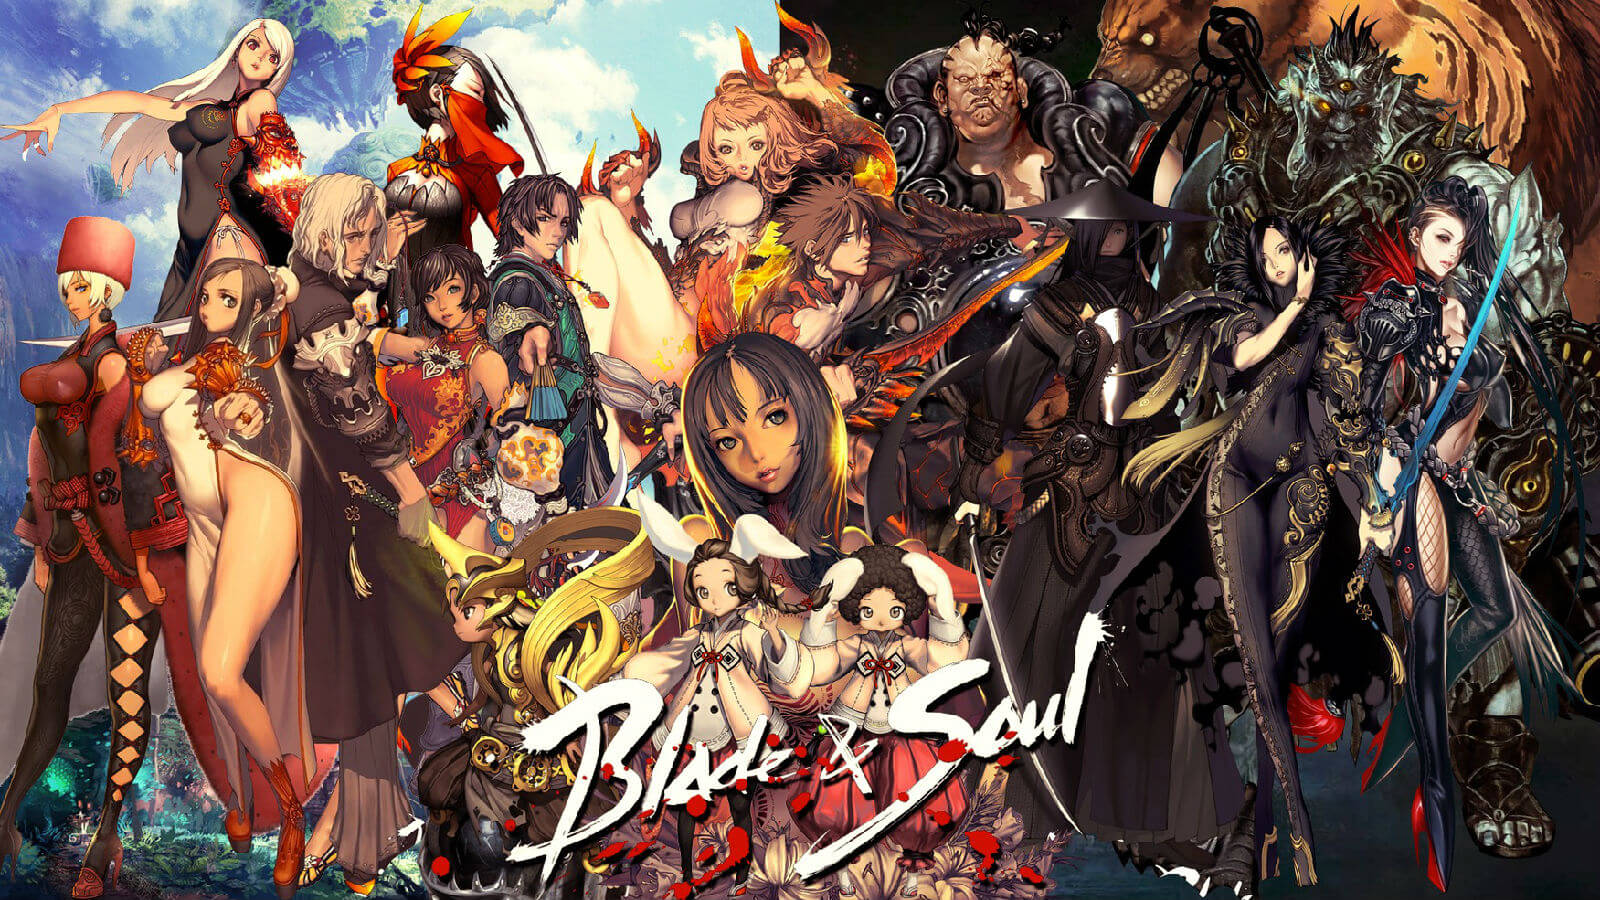 Blade & Soul [BD] Sub Indo : Episode 1-13 END